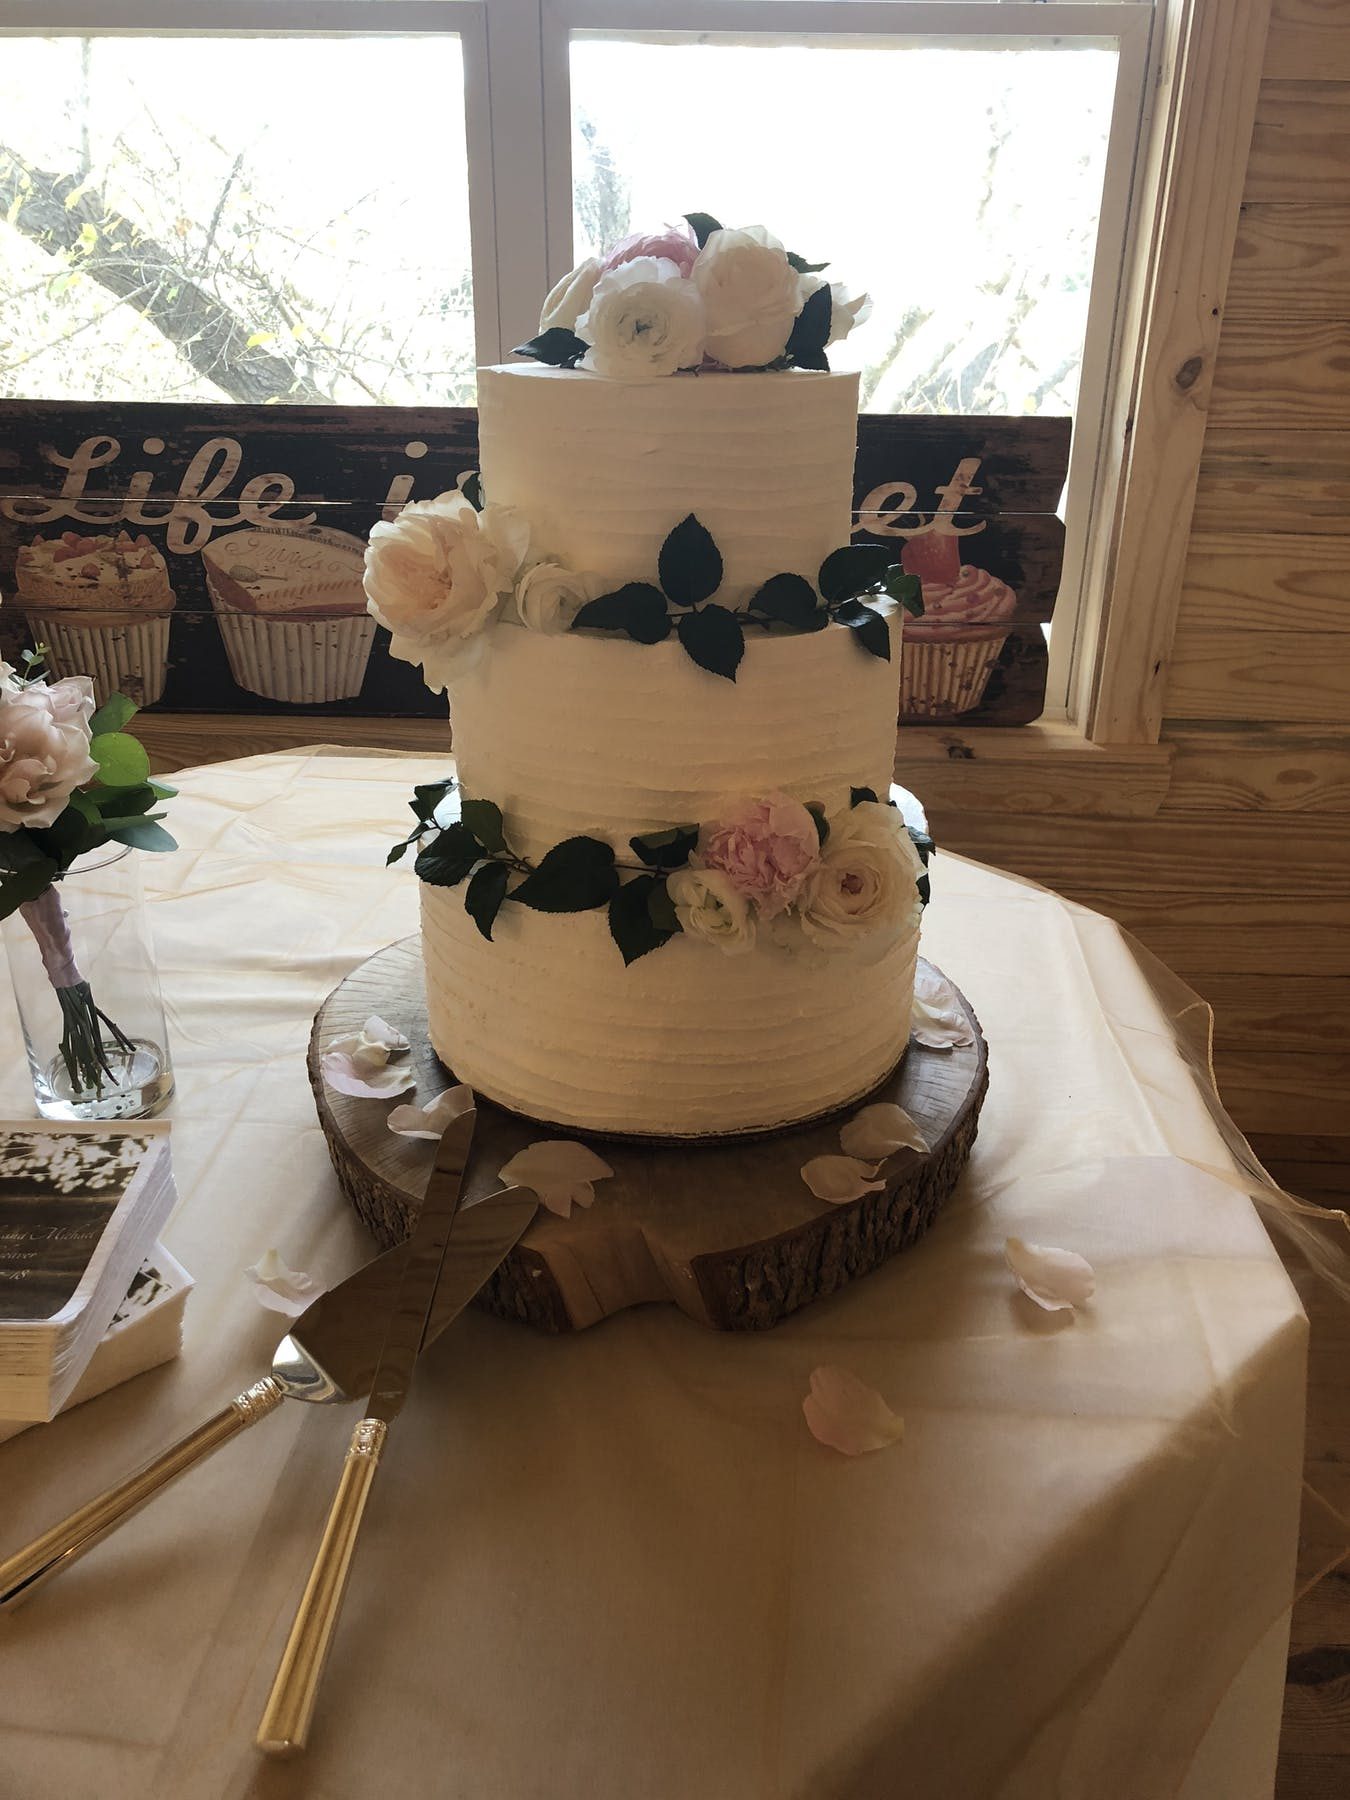 a wedding cake sitting on top of a table